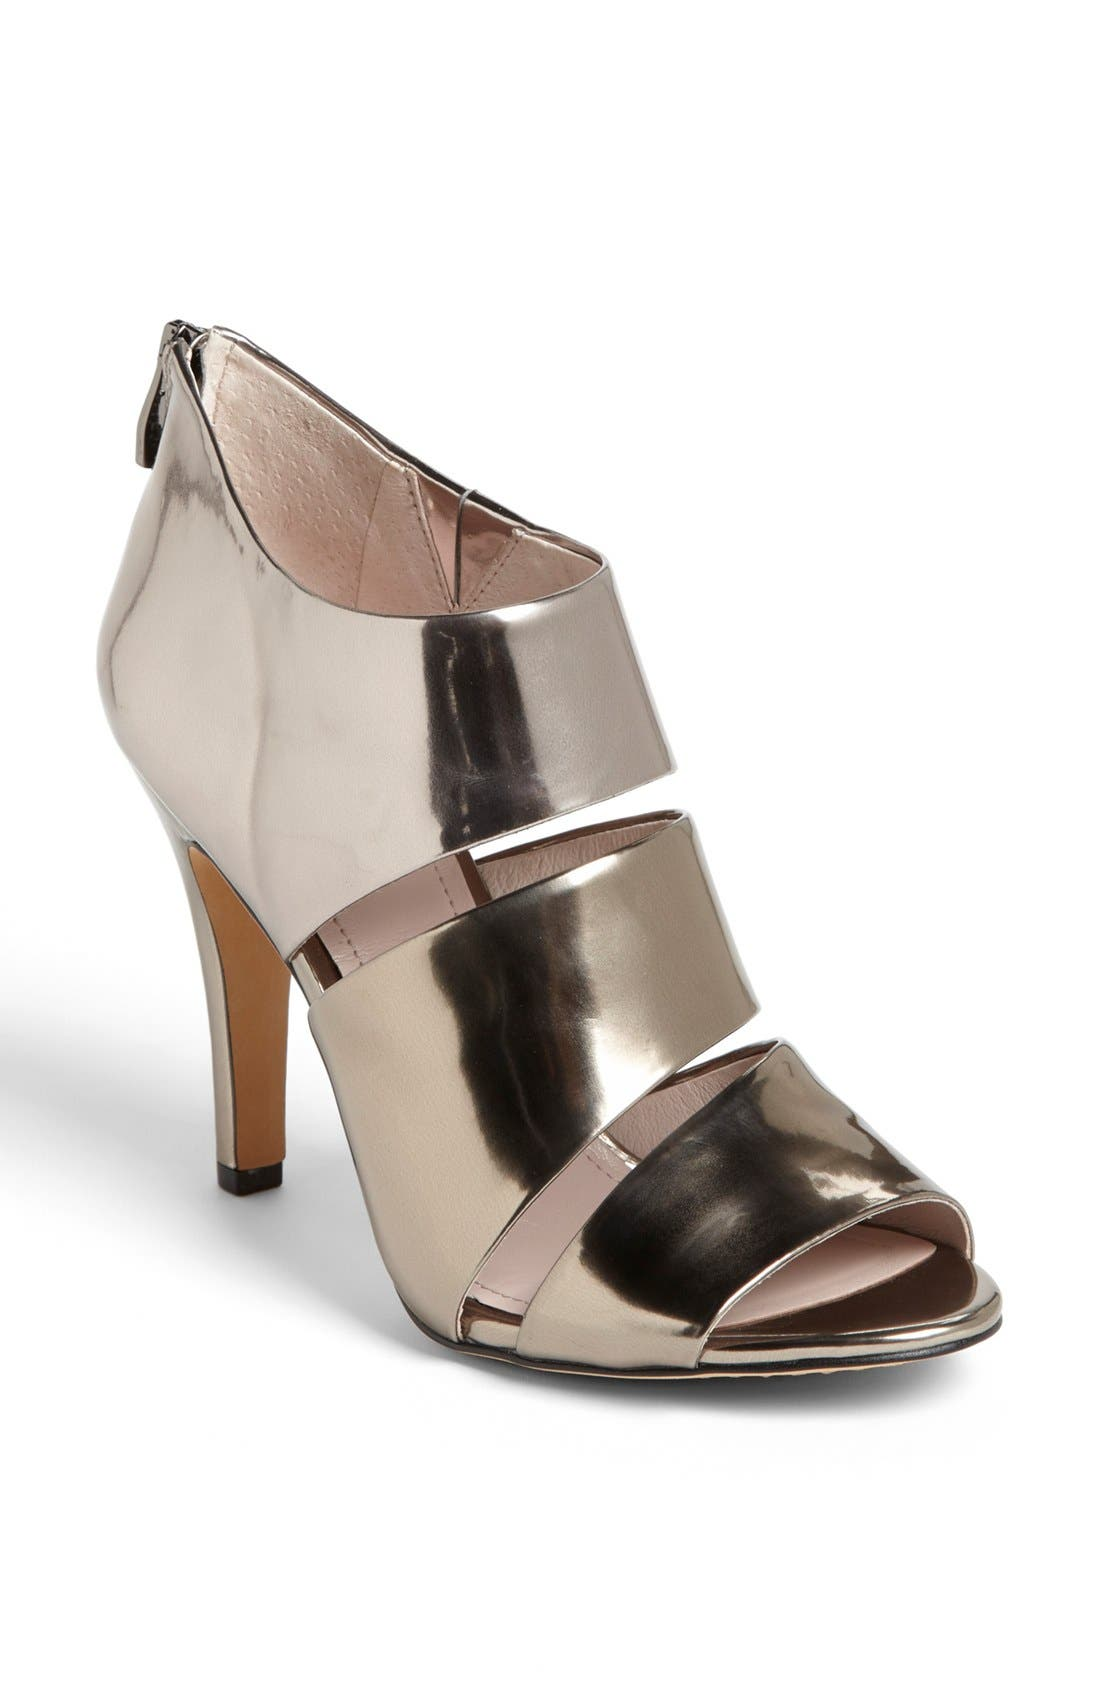 Alternate Image 1 Selected - Vince Camuto 'Karmi' Peep Toe Bootie